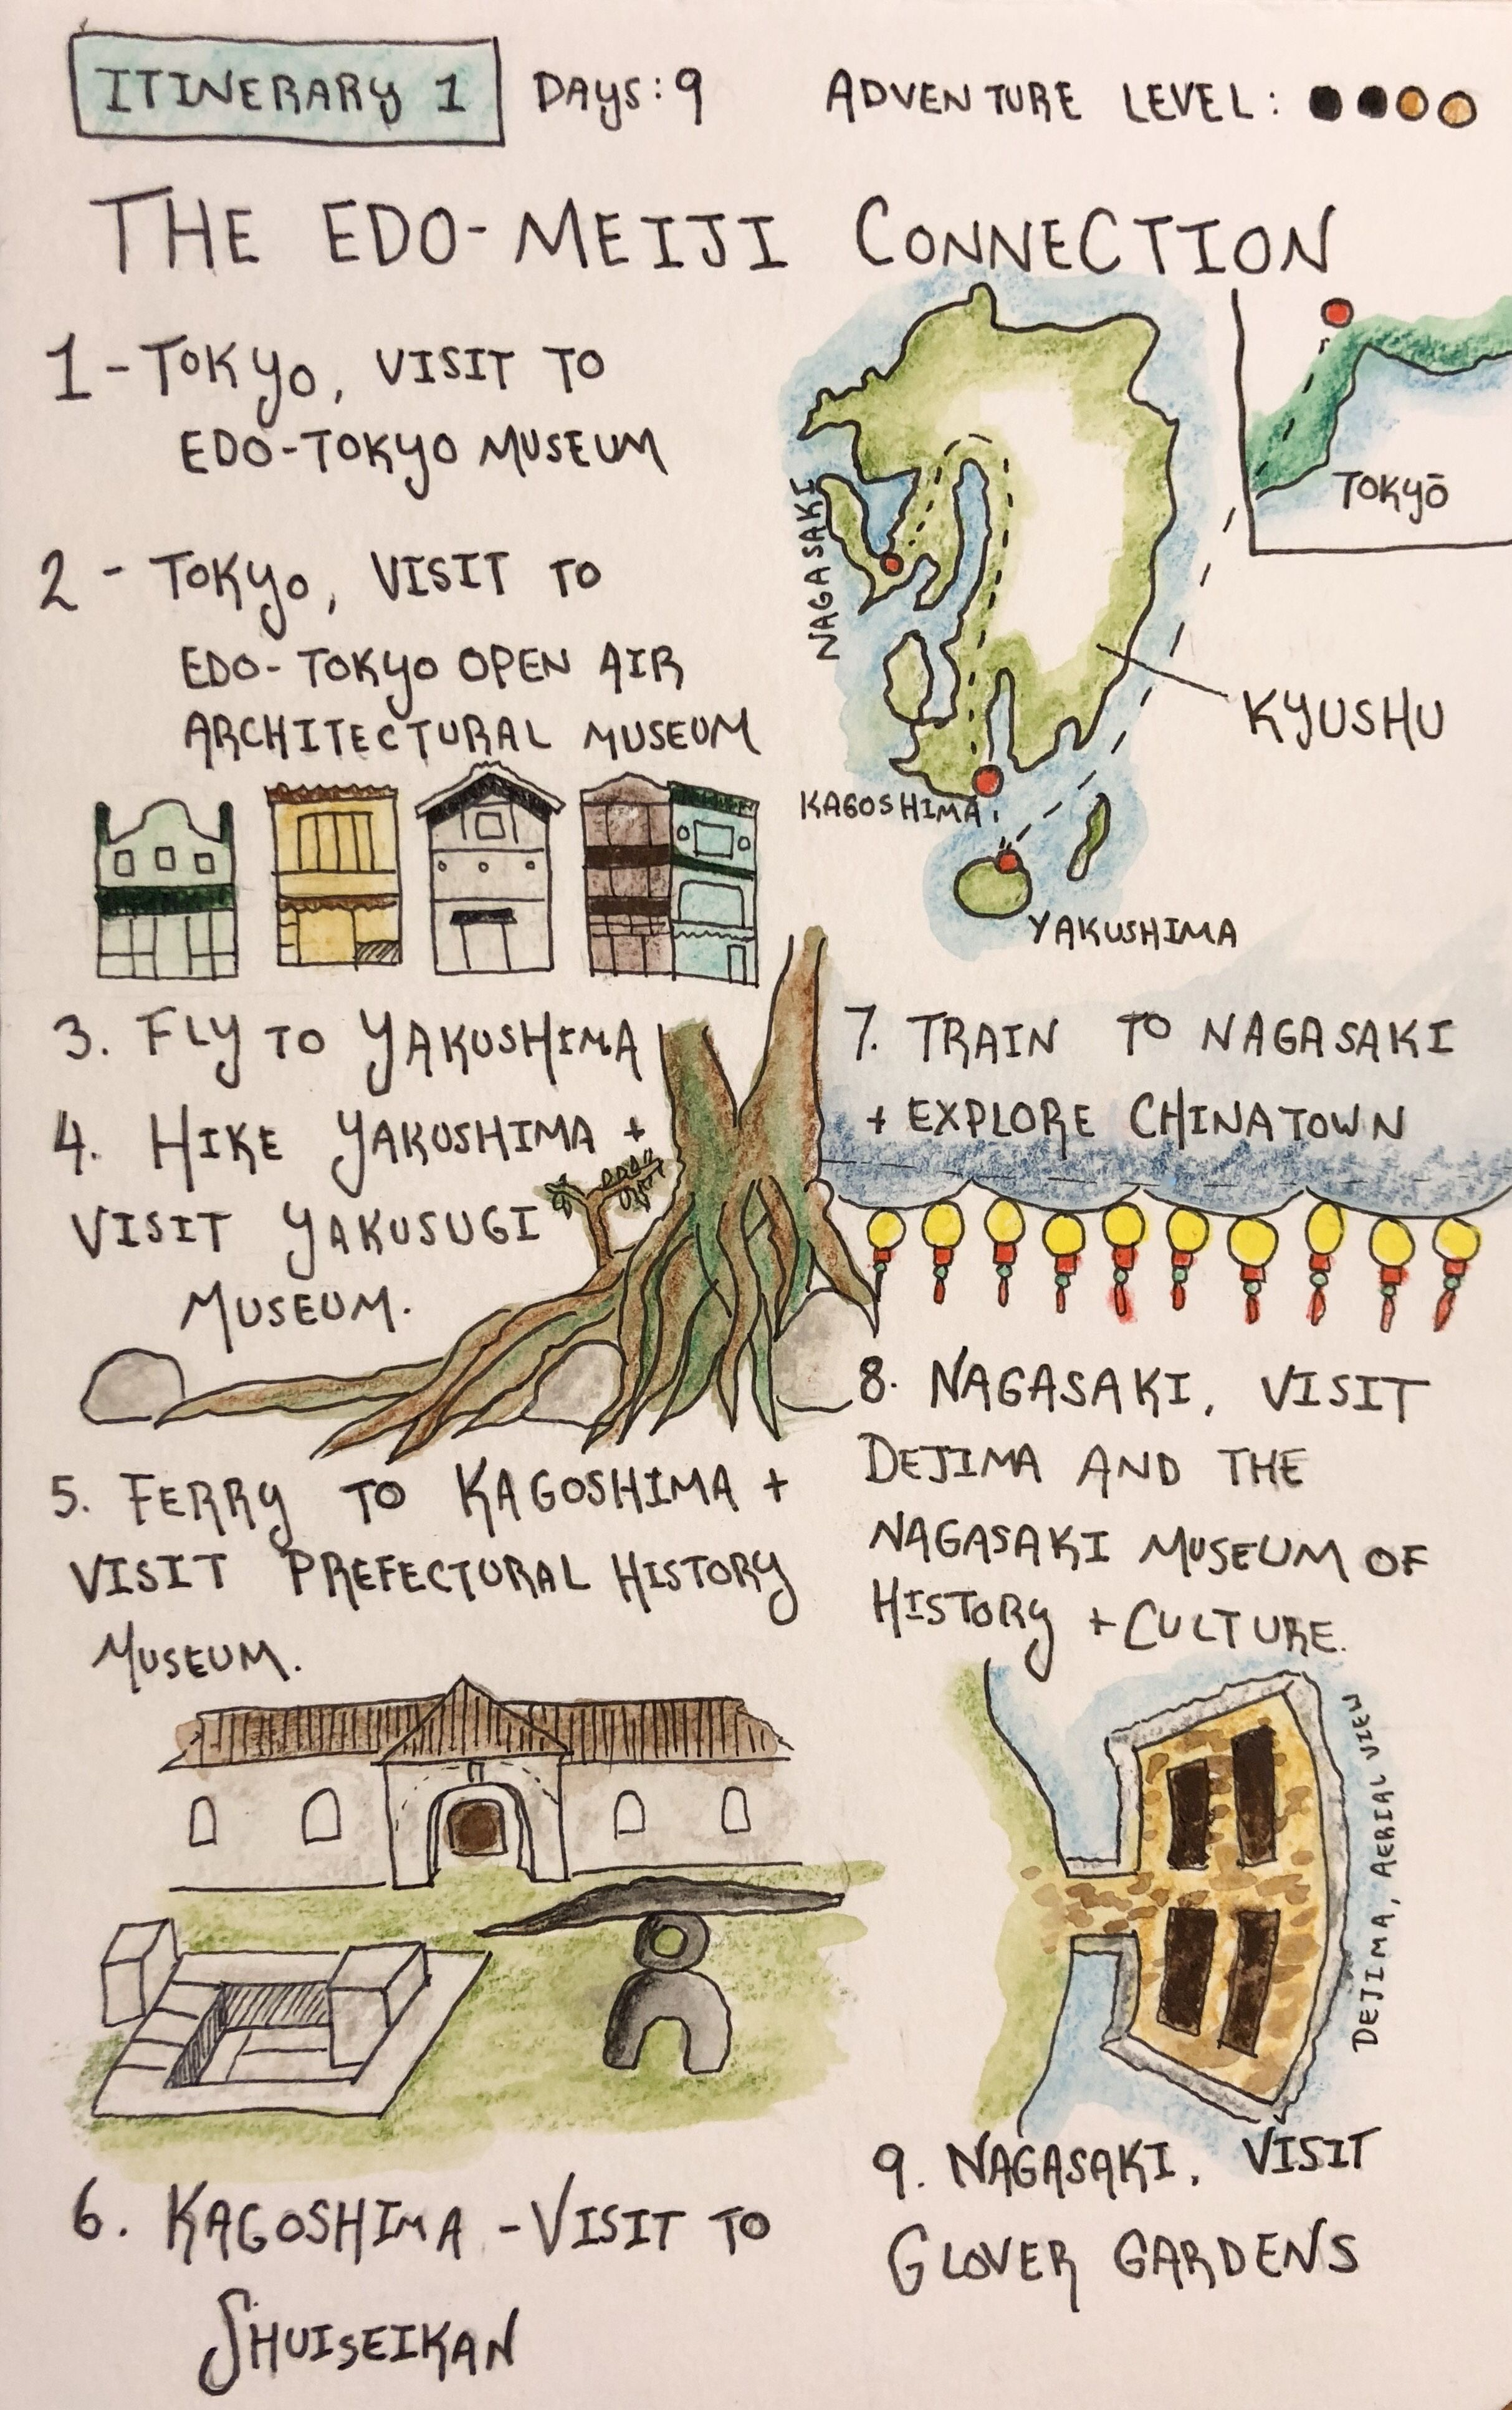 Japan S Meiji Industrial Revolution Suggested Itinerary 1